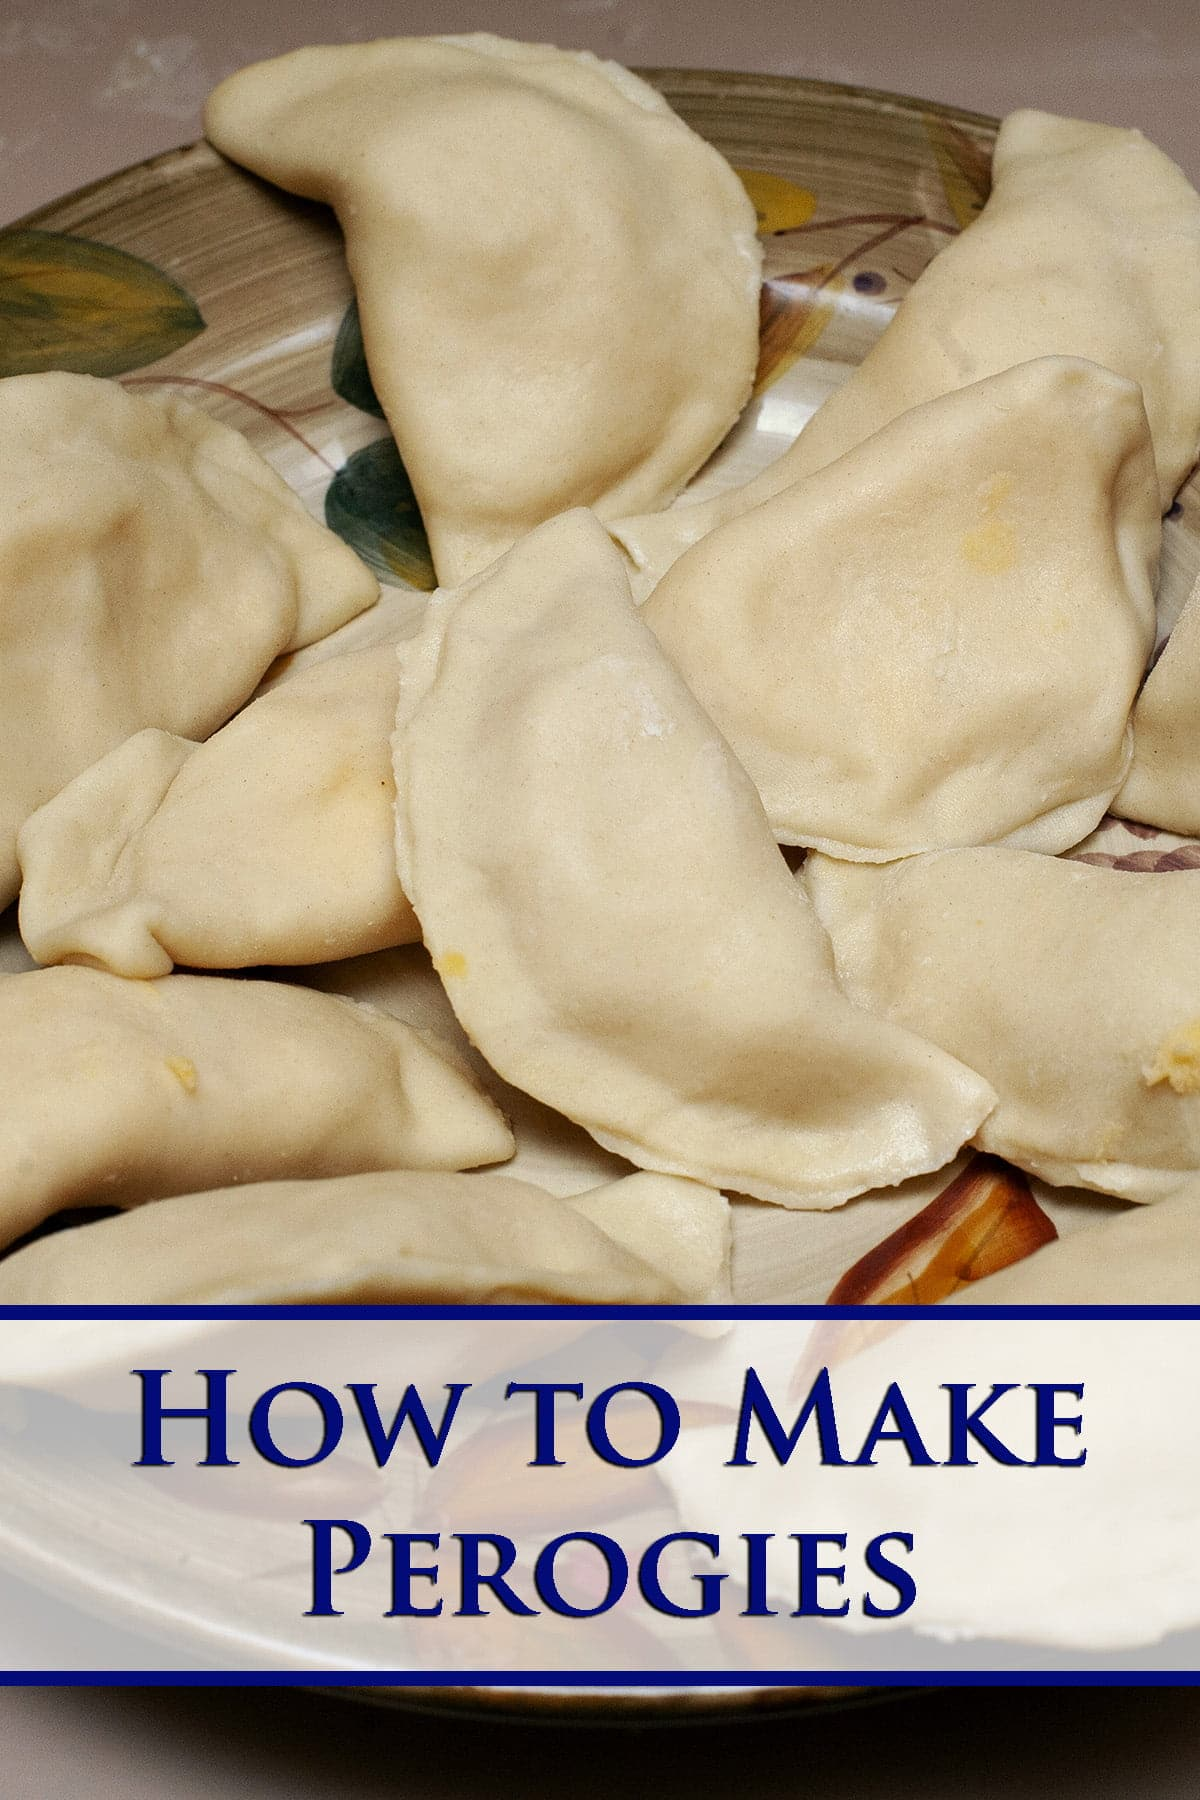 A plate of homemade pierogi - Ukrainian dumplings filled with cheesy potatoes. These are raw, ready to go in the pot of boiling water.